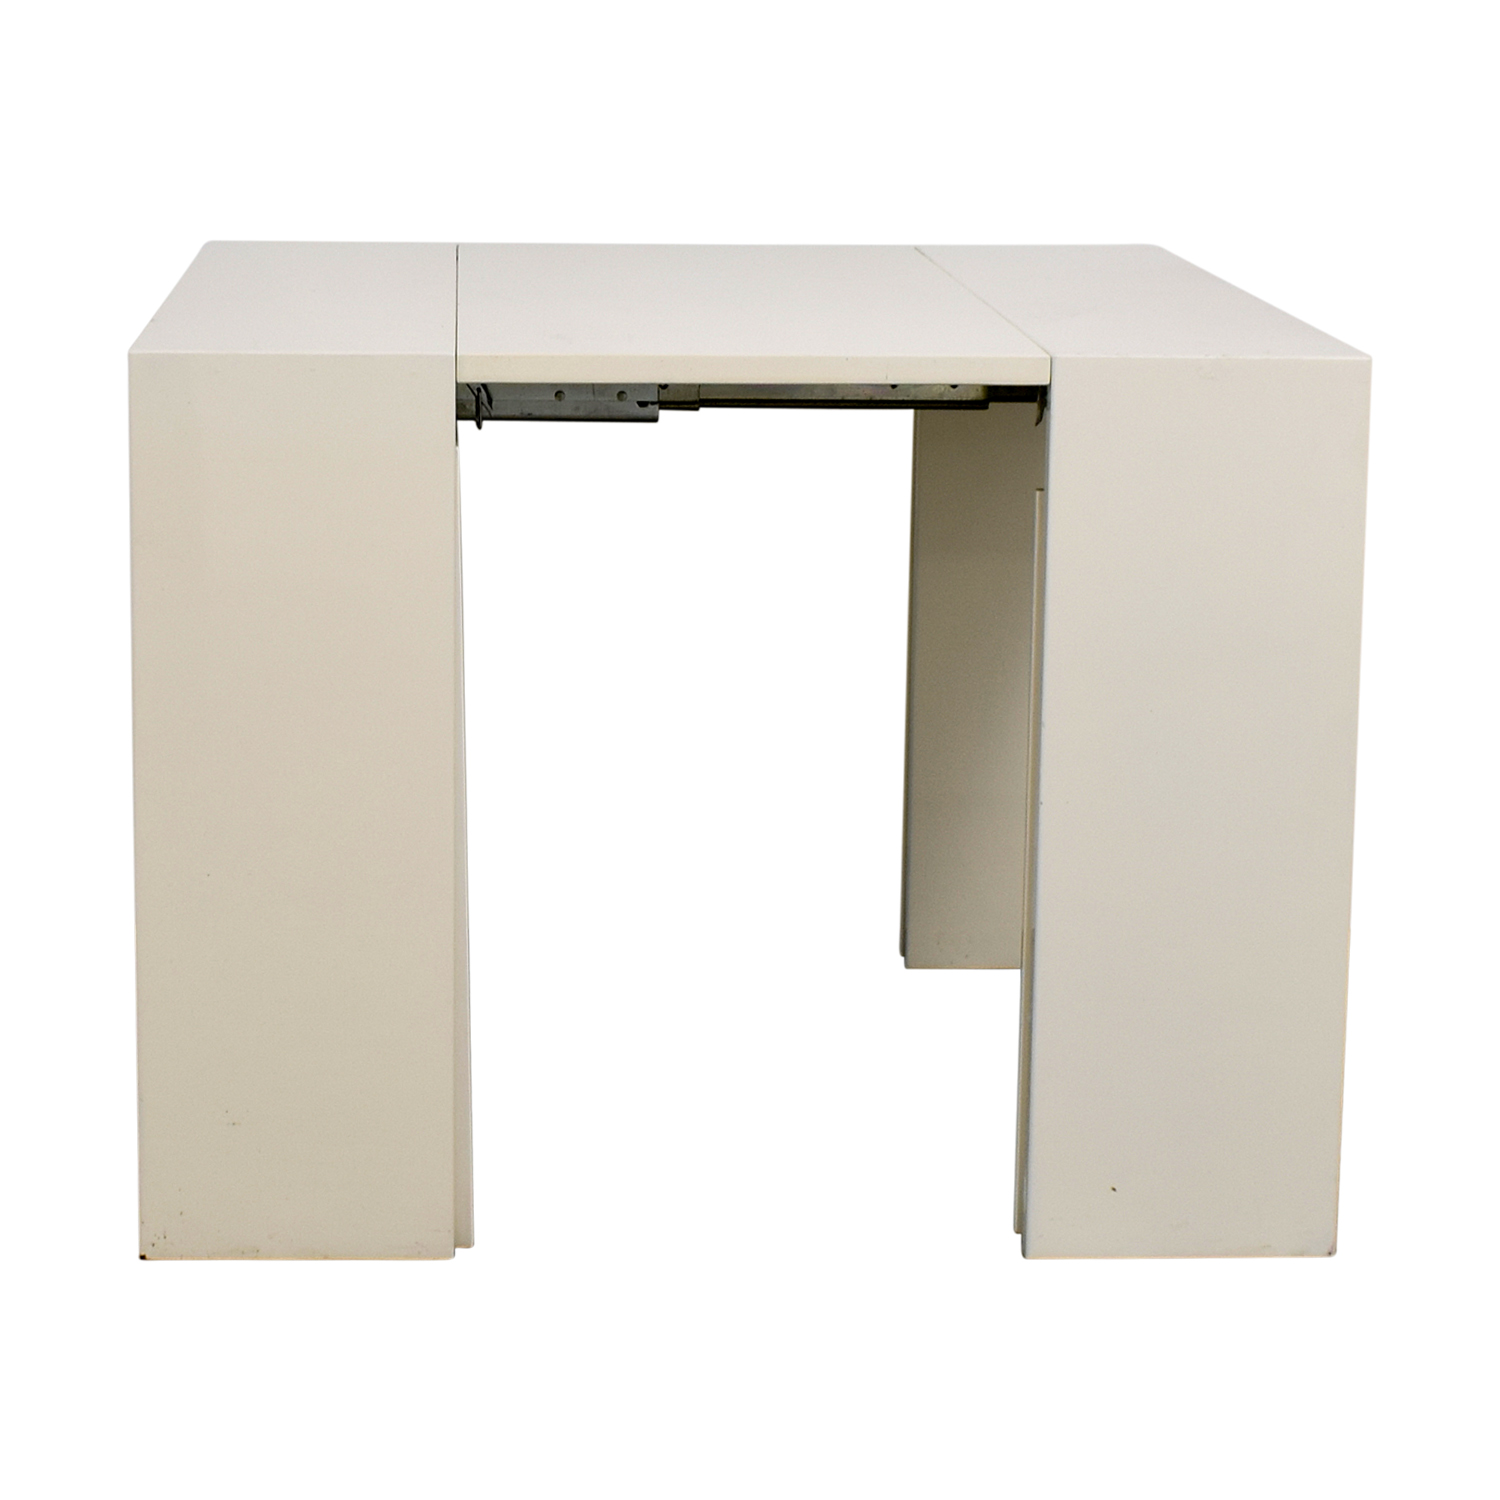 Modani Modani Extendable White and Creme Table dimensions